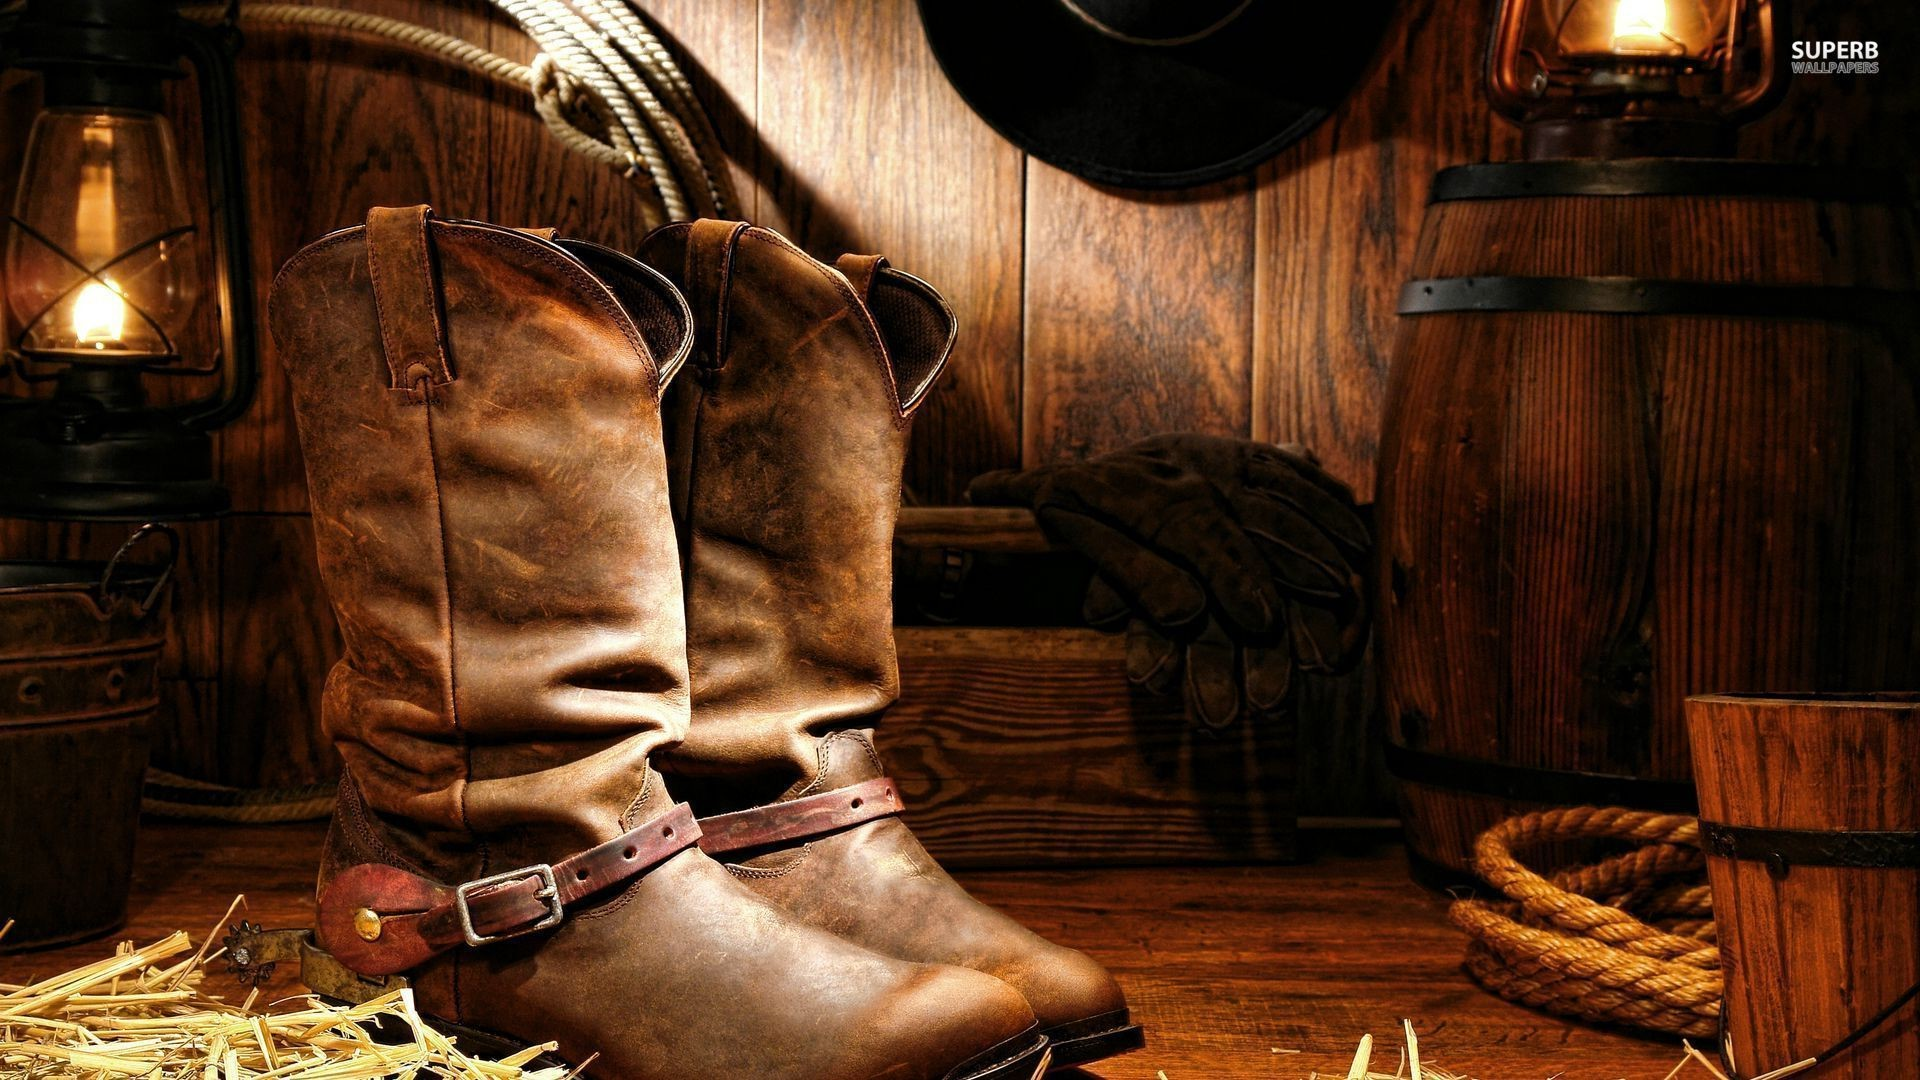 Res: 1920x1080, Download free cowboy wallpapers for your mobile phone most